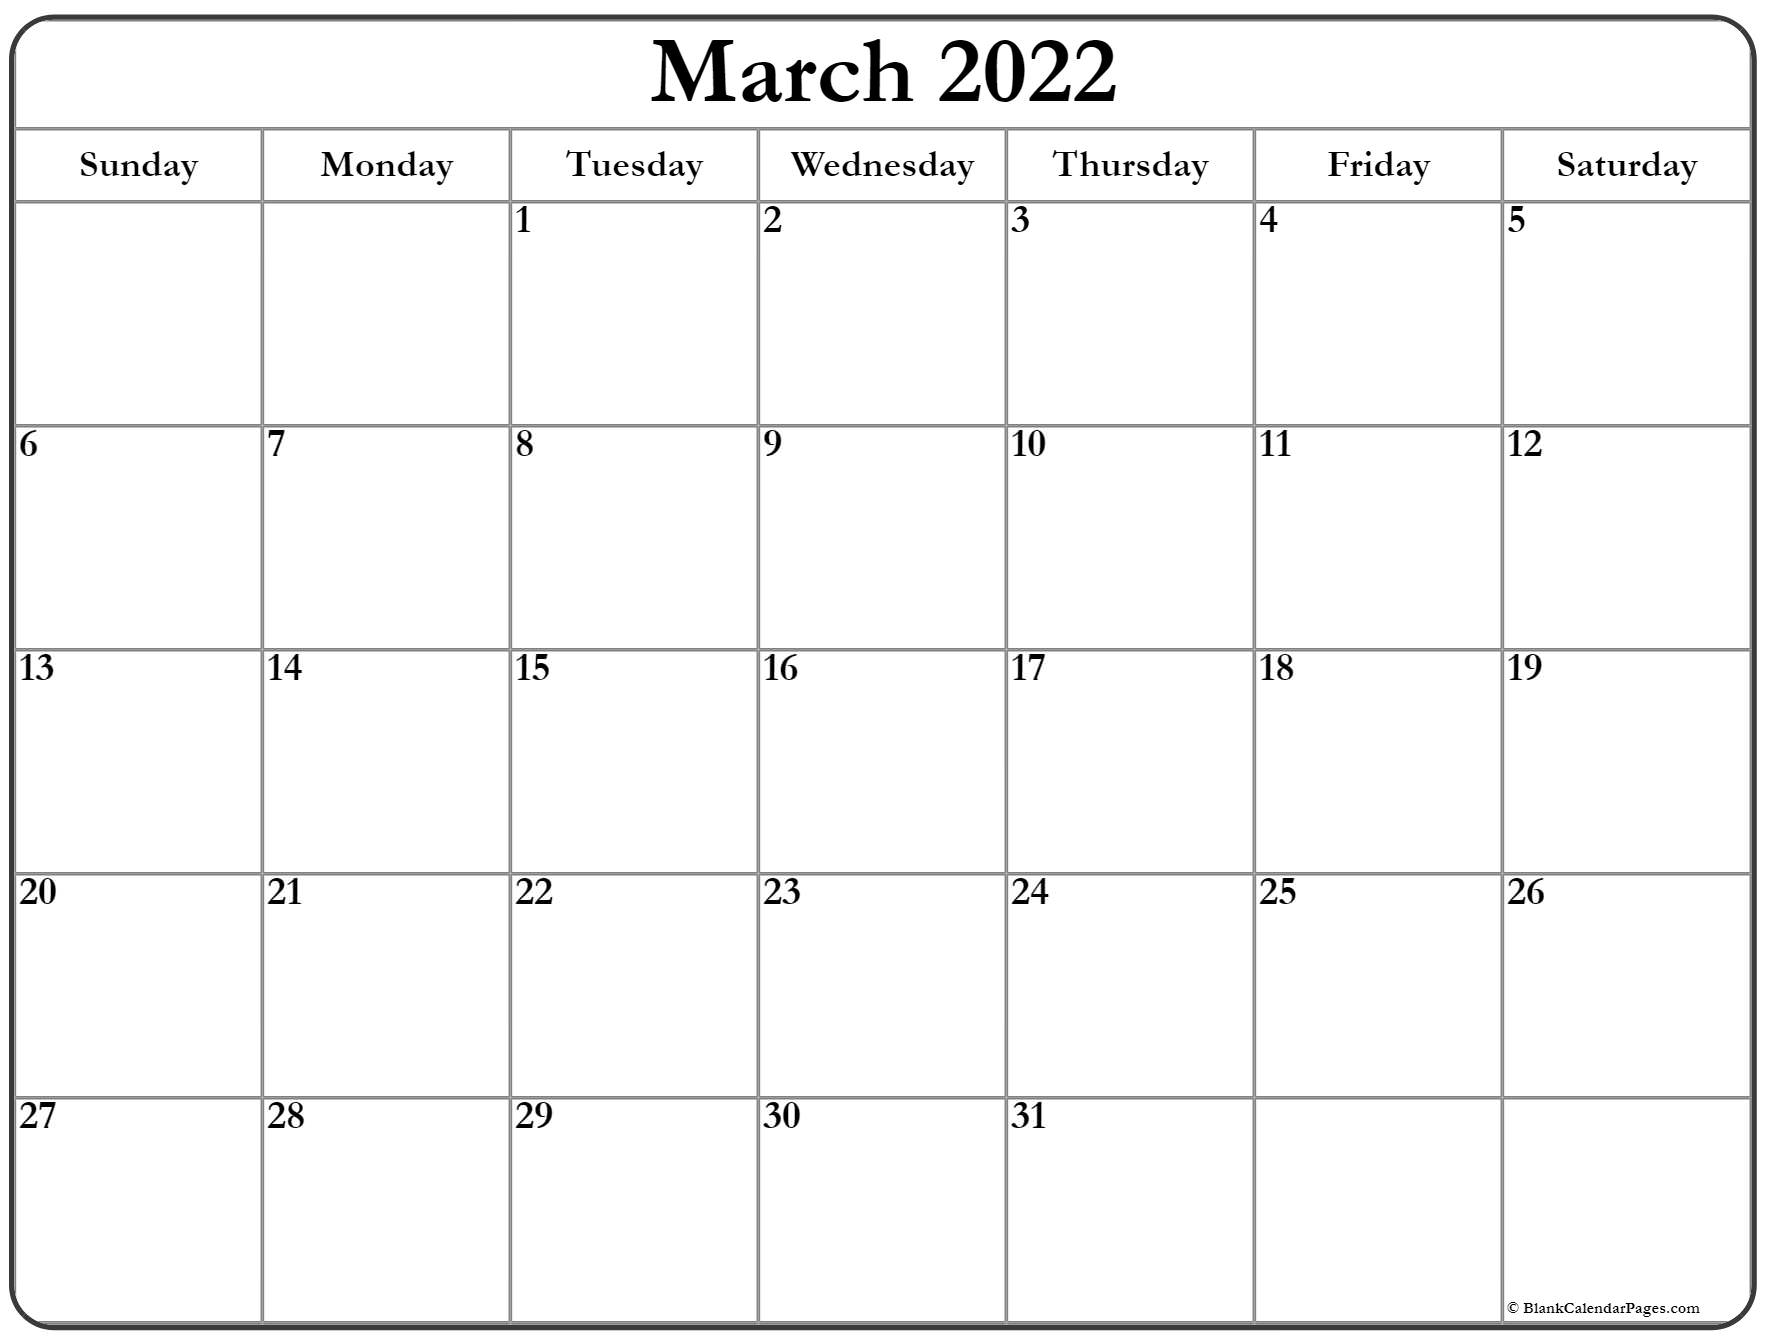 March 2022 calendar | free printable monthly calendars